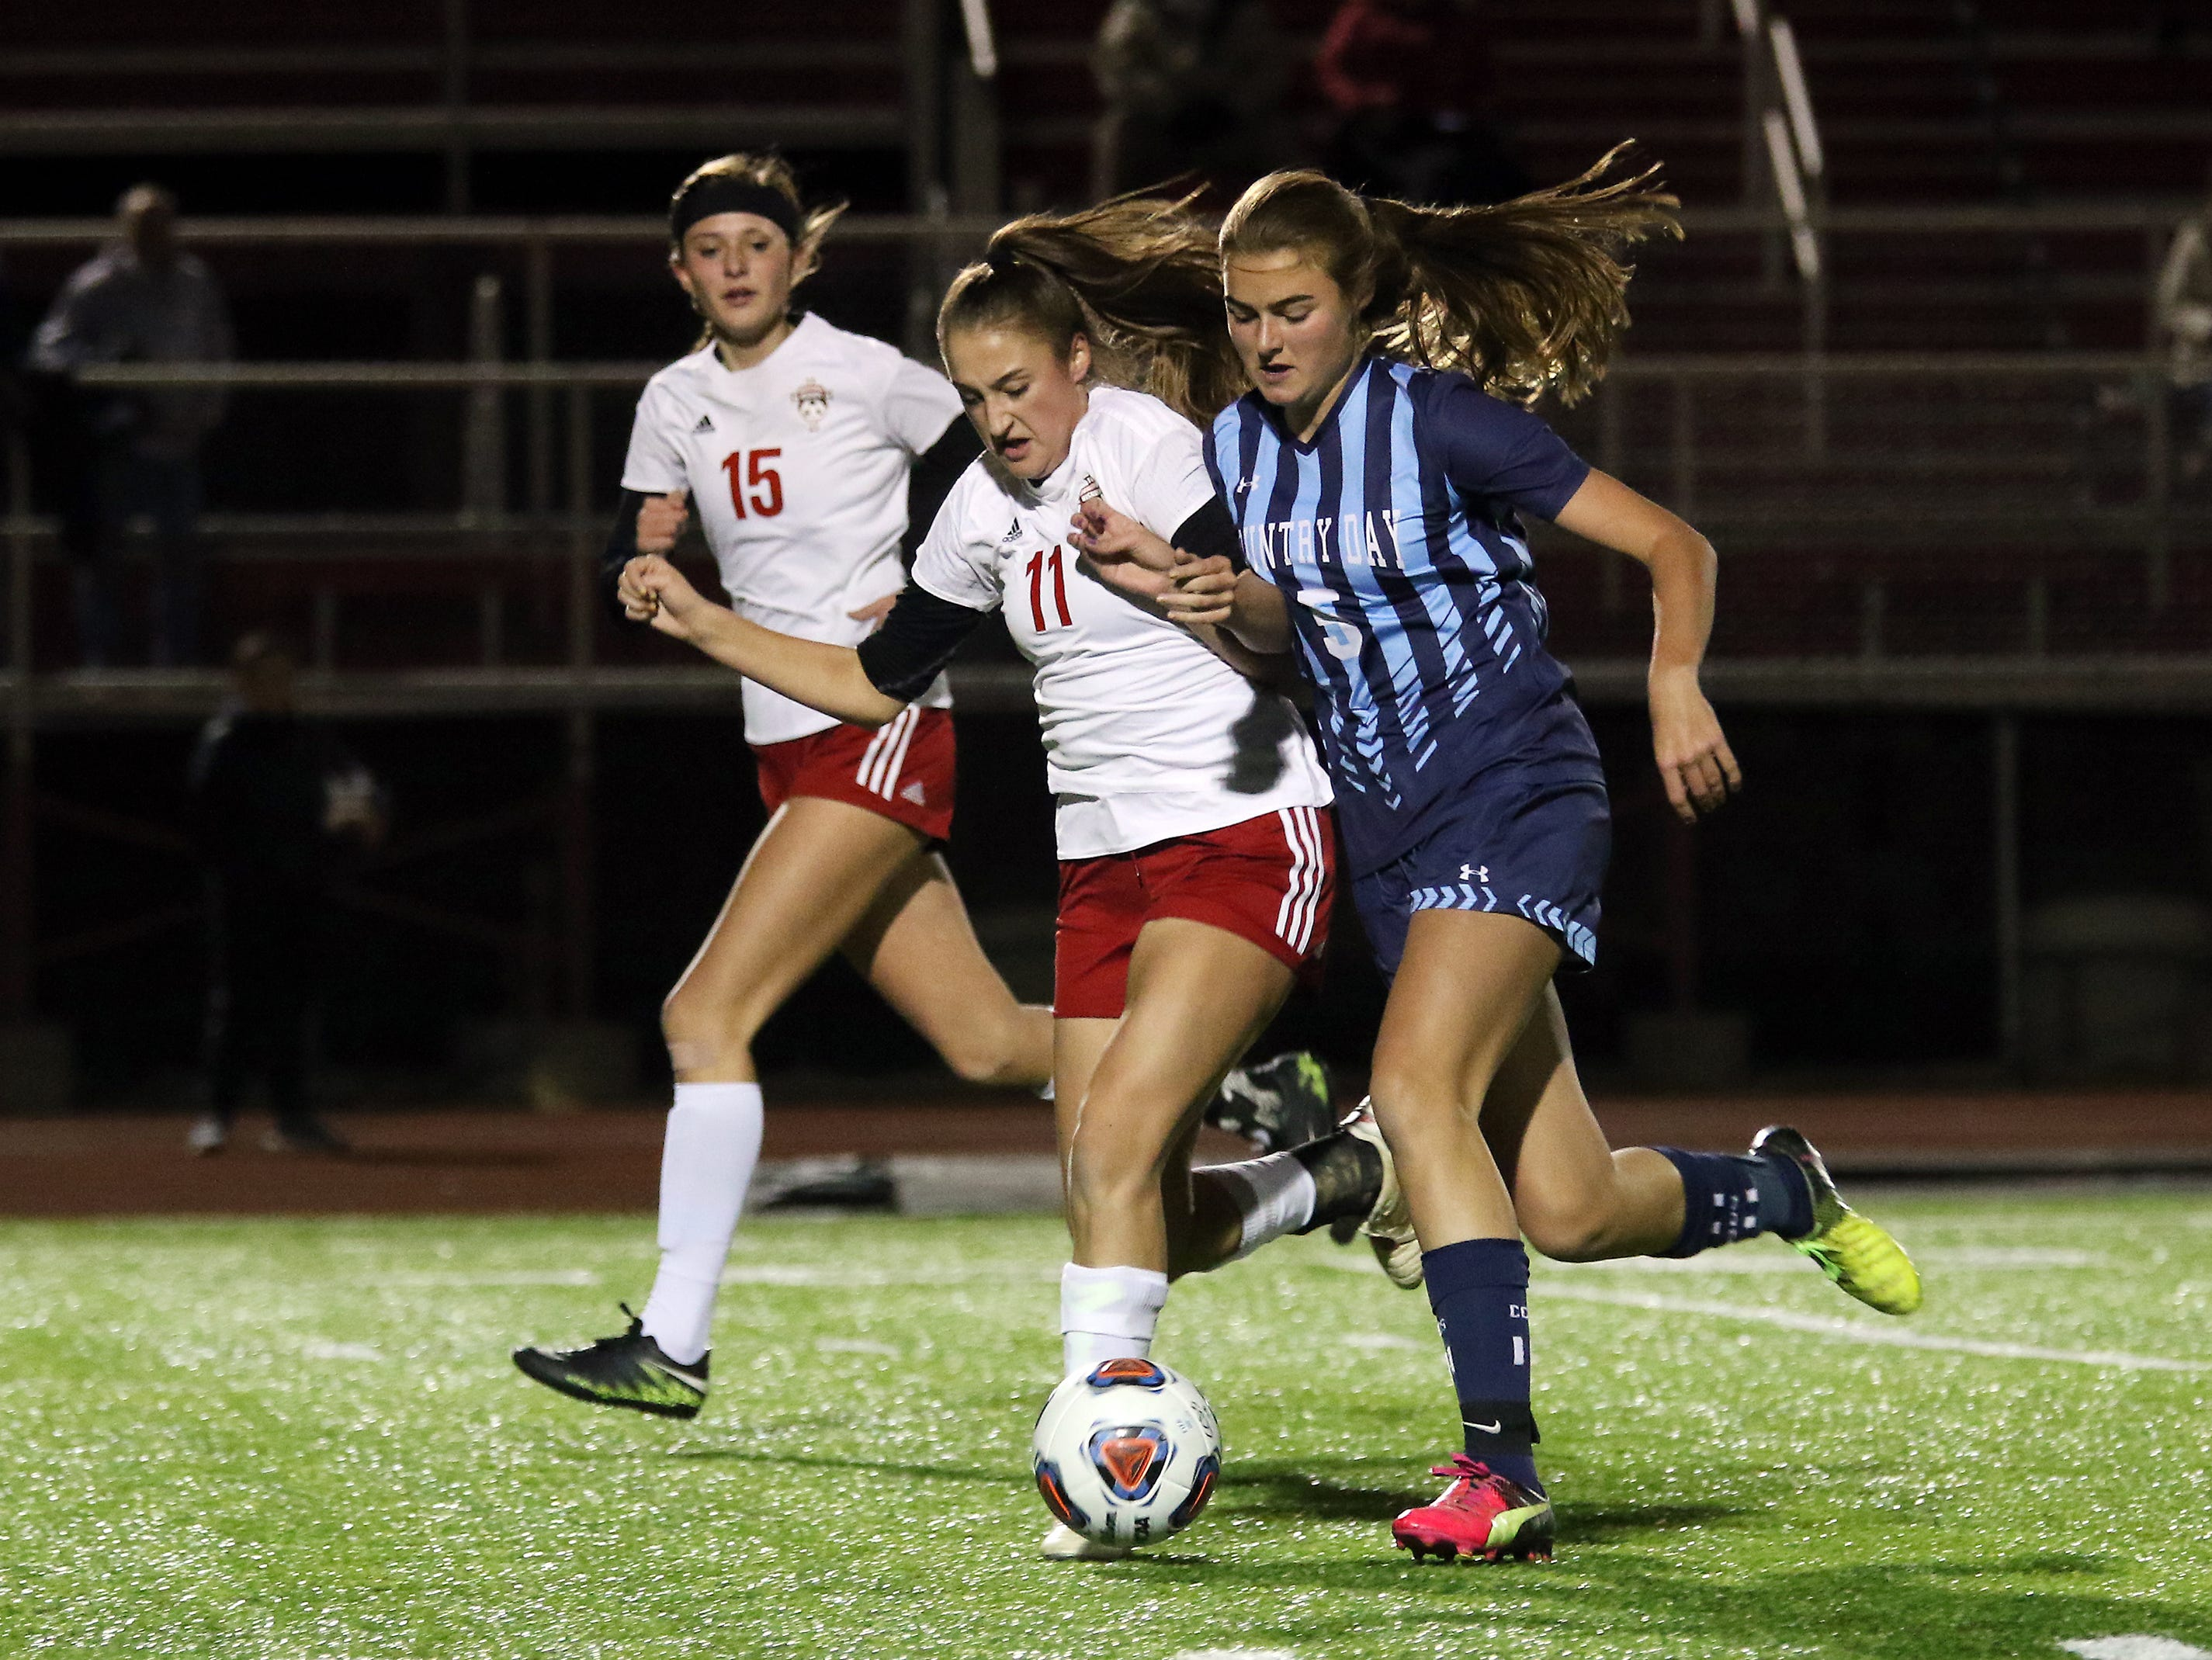 Rosecrans' Korynn Porter chases down the ball against CCD in the Division III state semifinals at London High School on Tuesday.